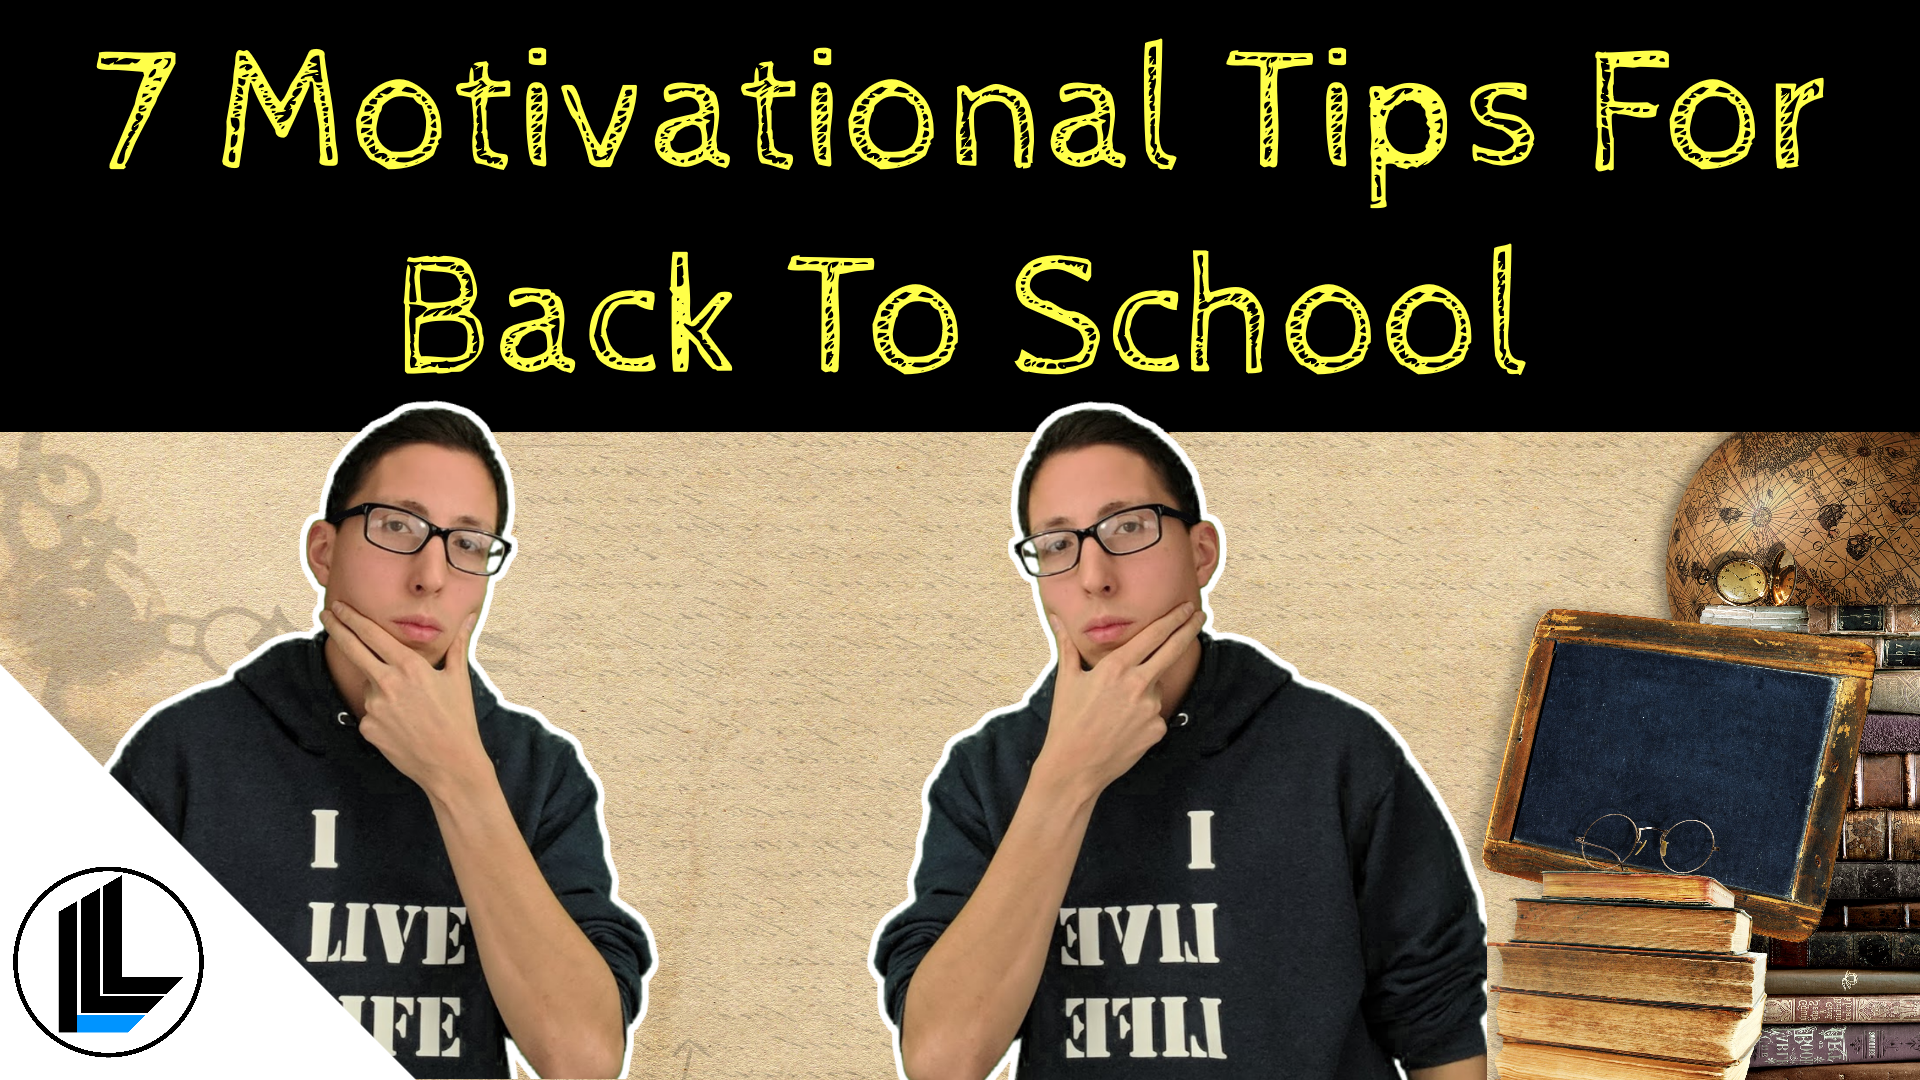 7 Motivational Tips For Back To School